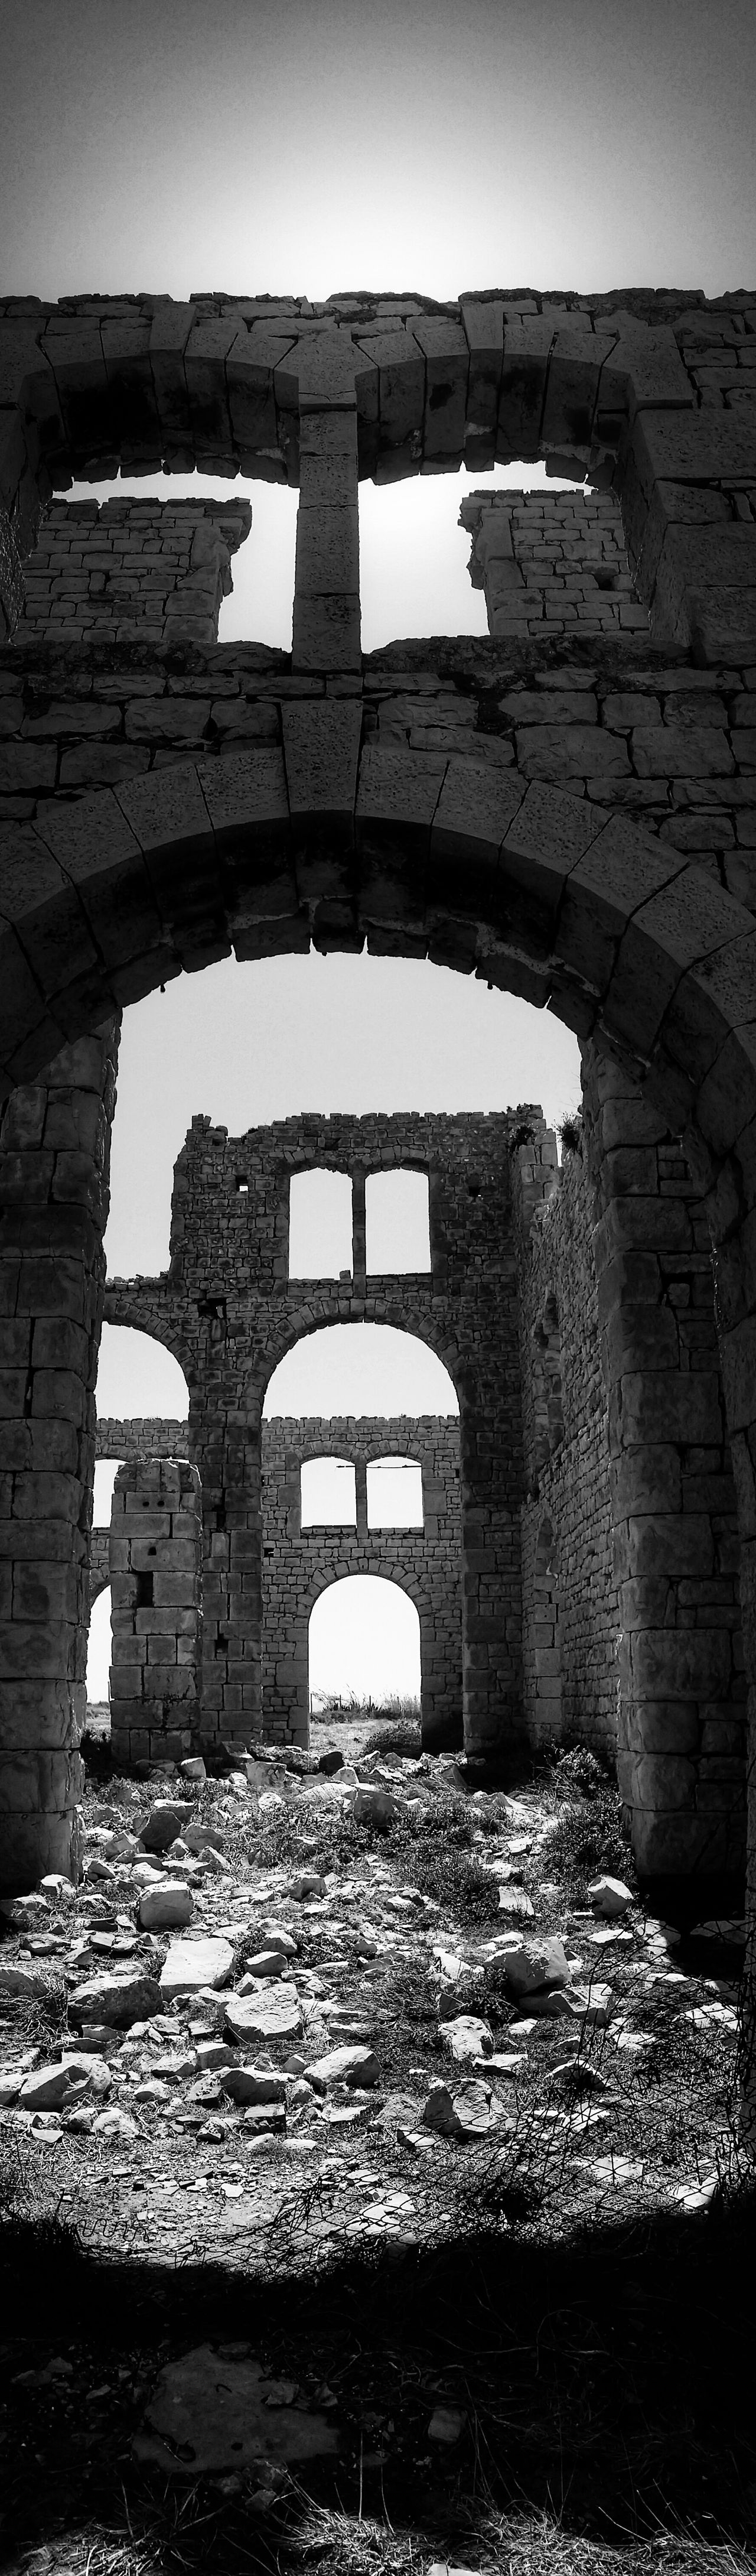 Sampieri Ragusa Sicily Italy Travel Photography Travel Voyage Traveling Mobile Photography Fine Art Backlight Panoramic Views Black & WhiteArchitecture Early XX Century's Industrial Facilities Furnaces Ruins Mobile Editing The Great Outdoors With Adobe The Architect - 2016 EyeEm Awards